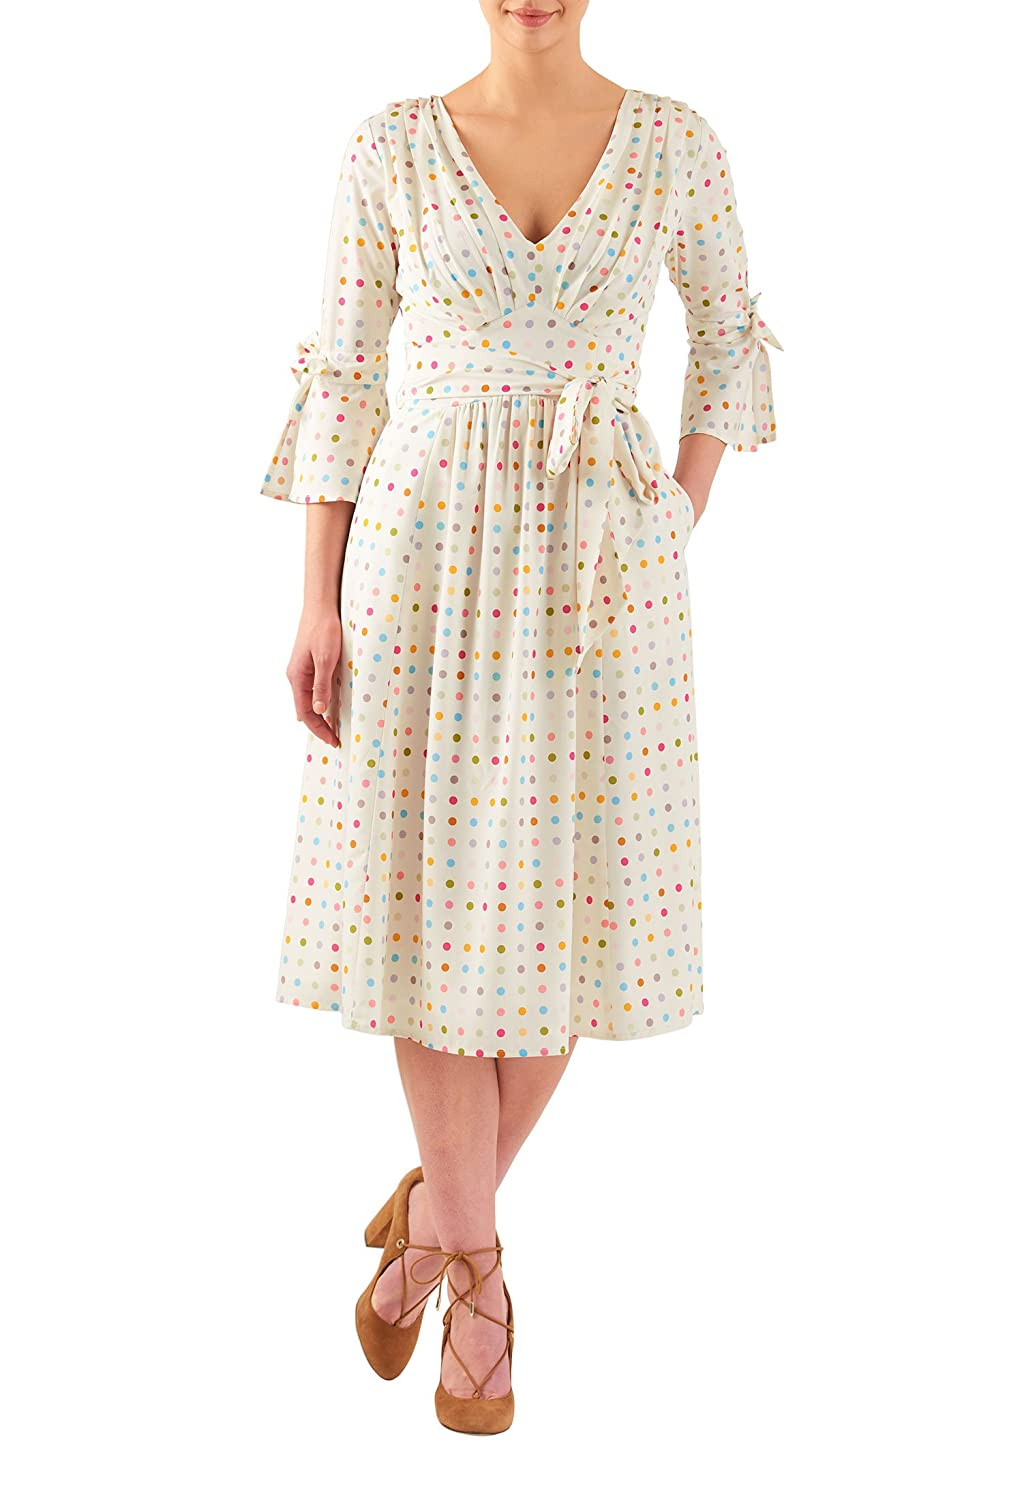 1960s Plus Size Dresses & Retro Mod Fashion Pleated polka dot print crepe midi dress $64.95 AT vintagedancer.com